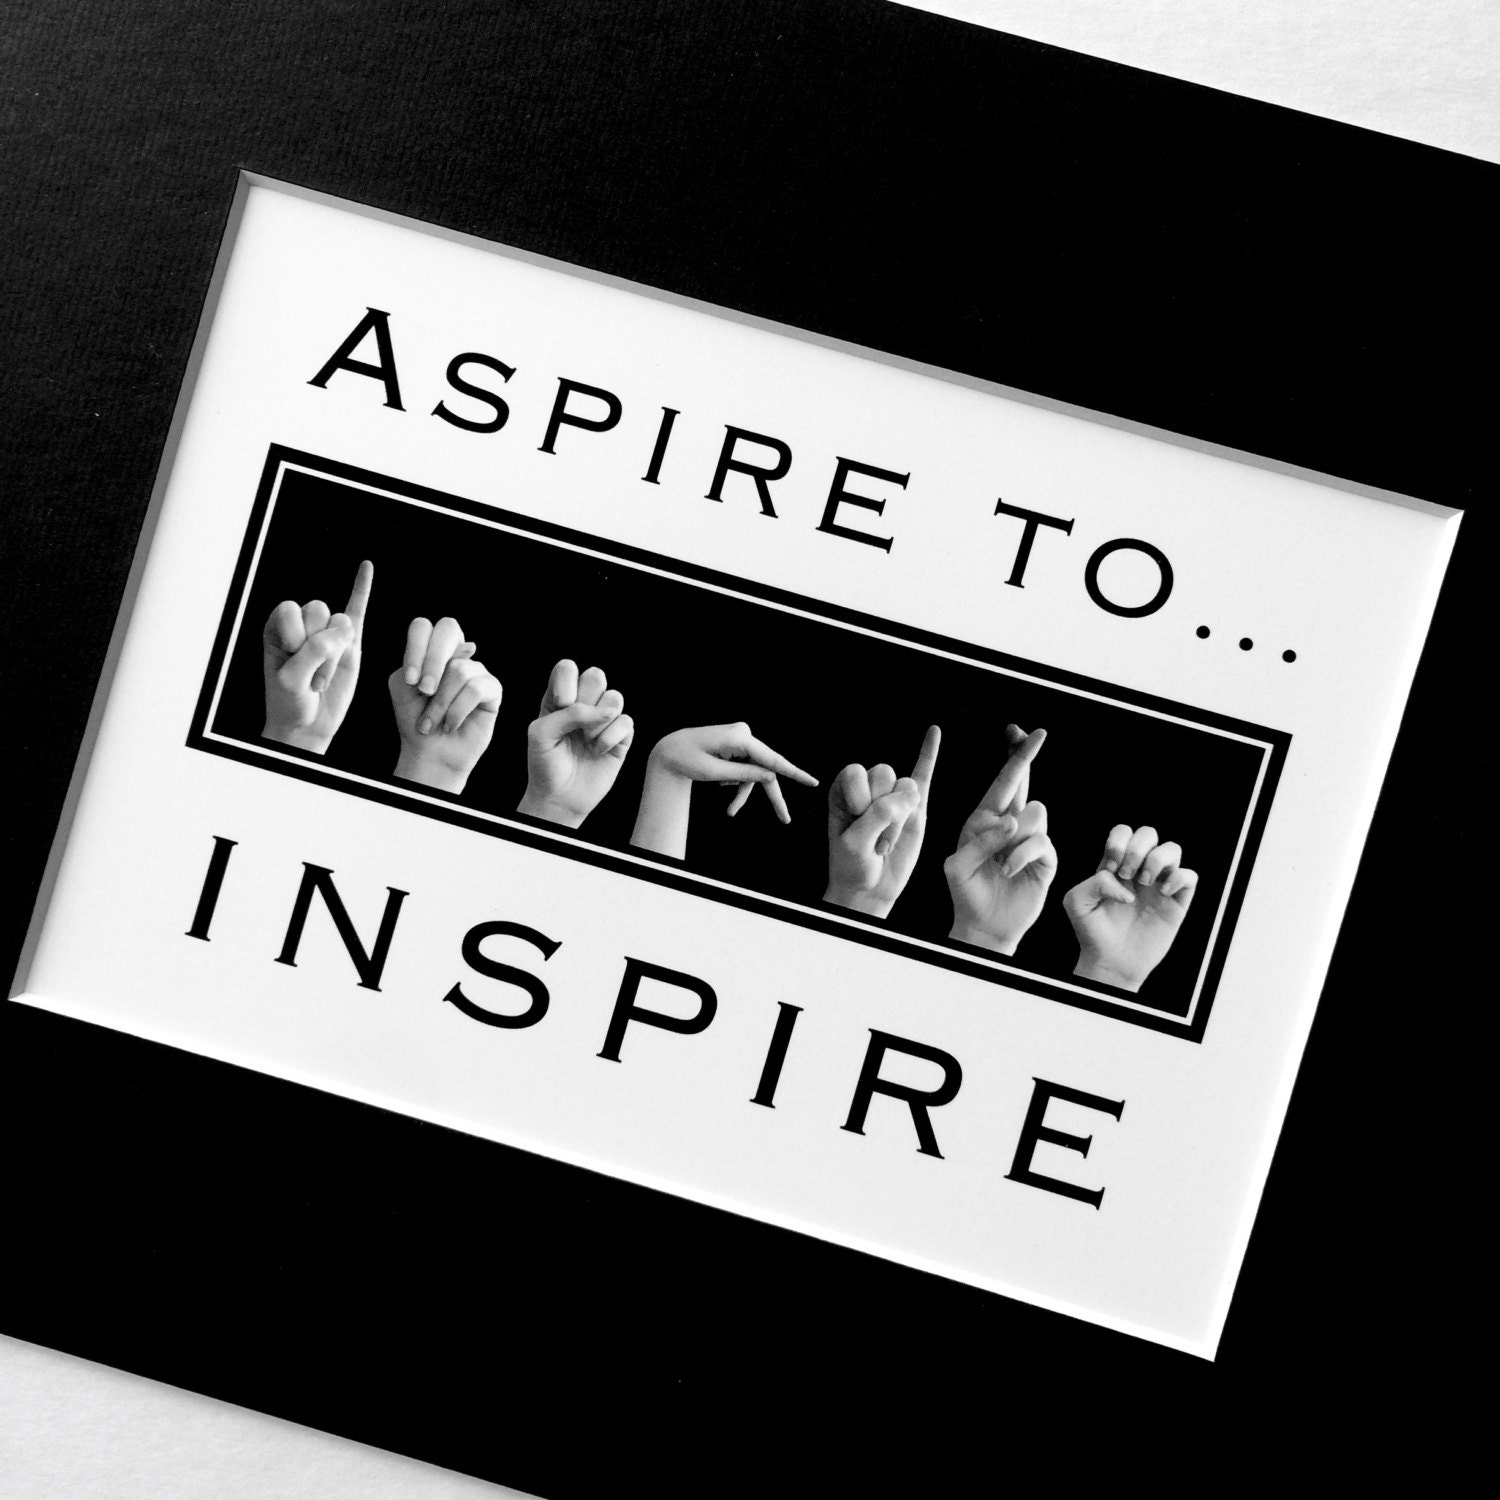 Asl Aspire To Inspire American Sign Language Letters  Black  White